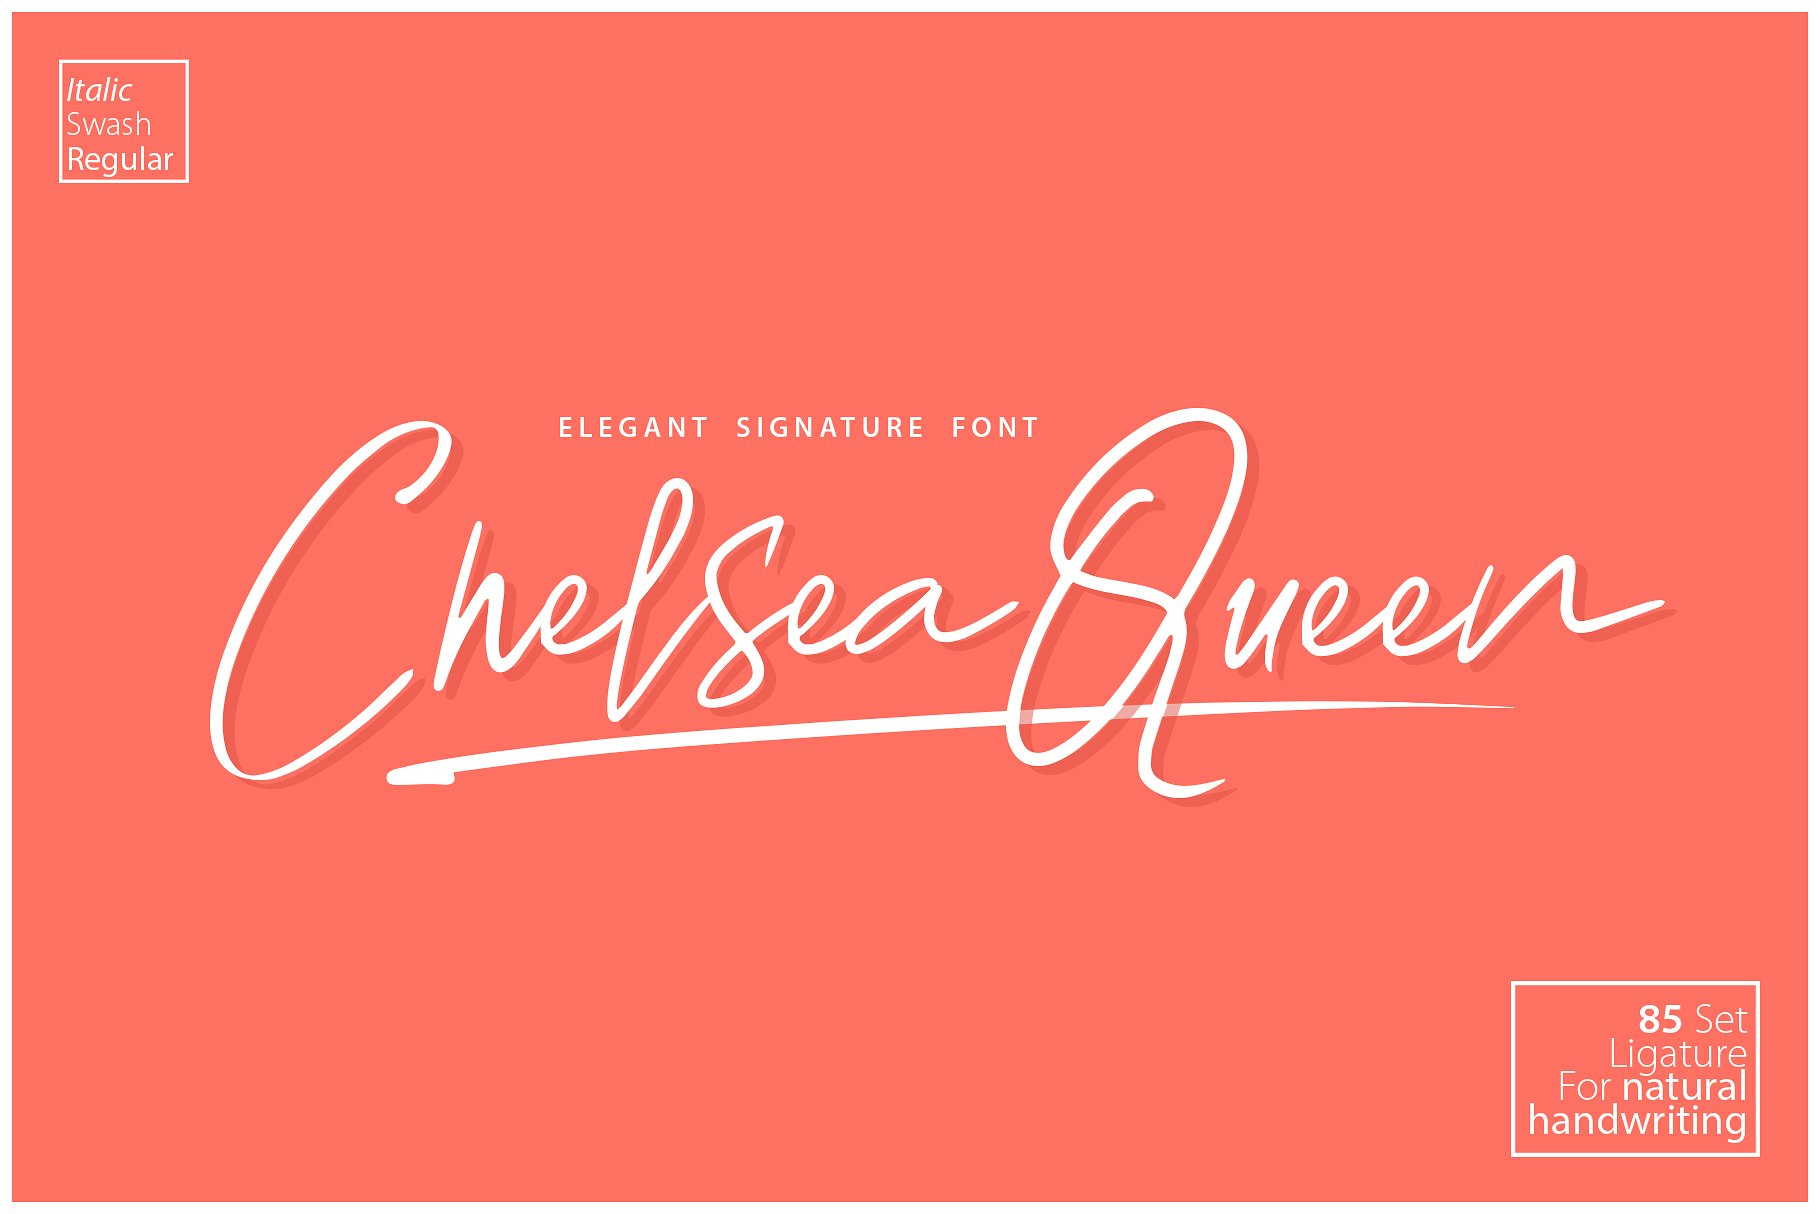 Chelsea Queen Elegant Signature Handwritten Fonts, Alphabet Fonts, Free Fonts, Script Fonts, Modern Fonts, Cursive Fonts, Design Fonts, Rustic Fonts, Calligraphy Fonts, Simple Fonts, Typography, Serif Fonts, Elegant Fonts, Professional Fonts, Beautiful Fonts https://avemateiu.com/fonts/ *affiliate